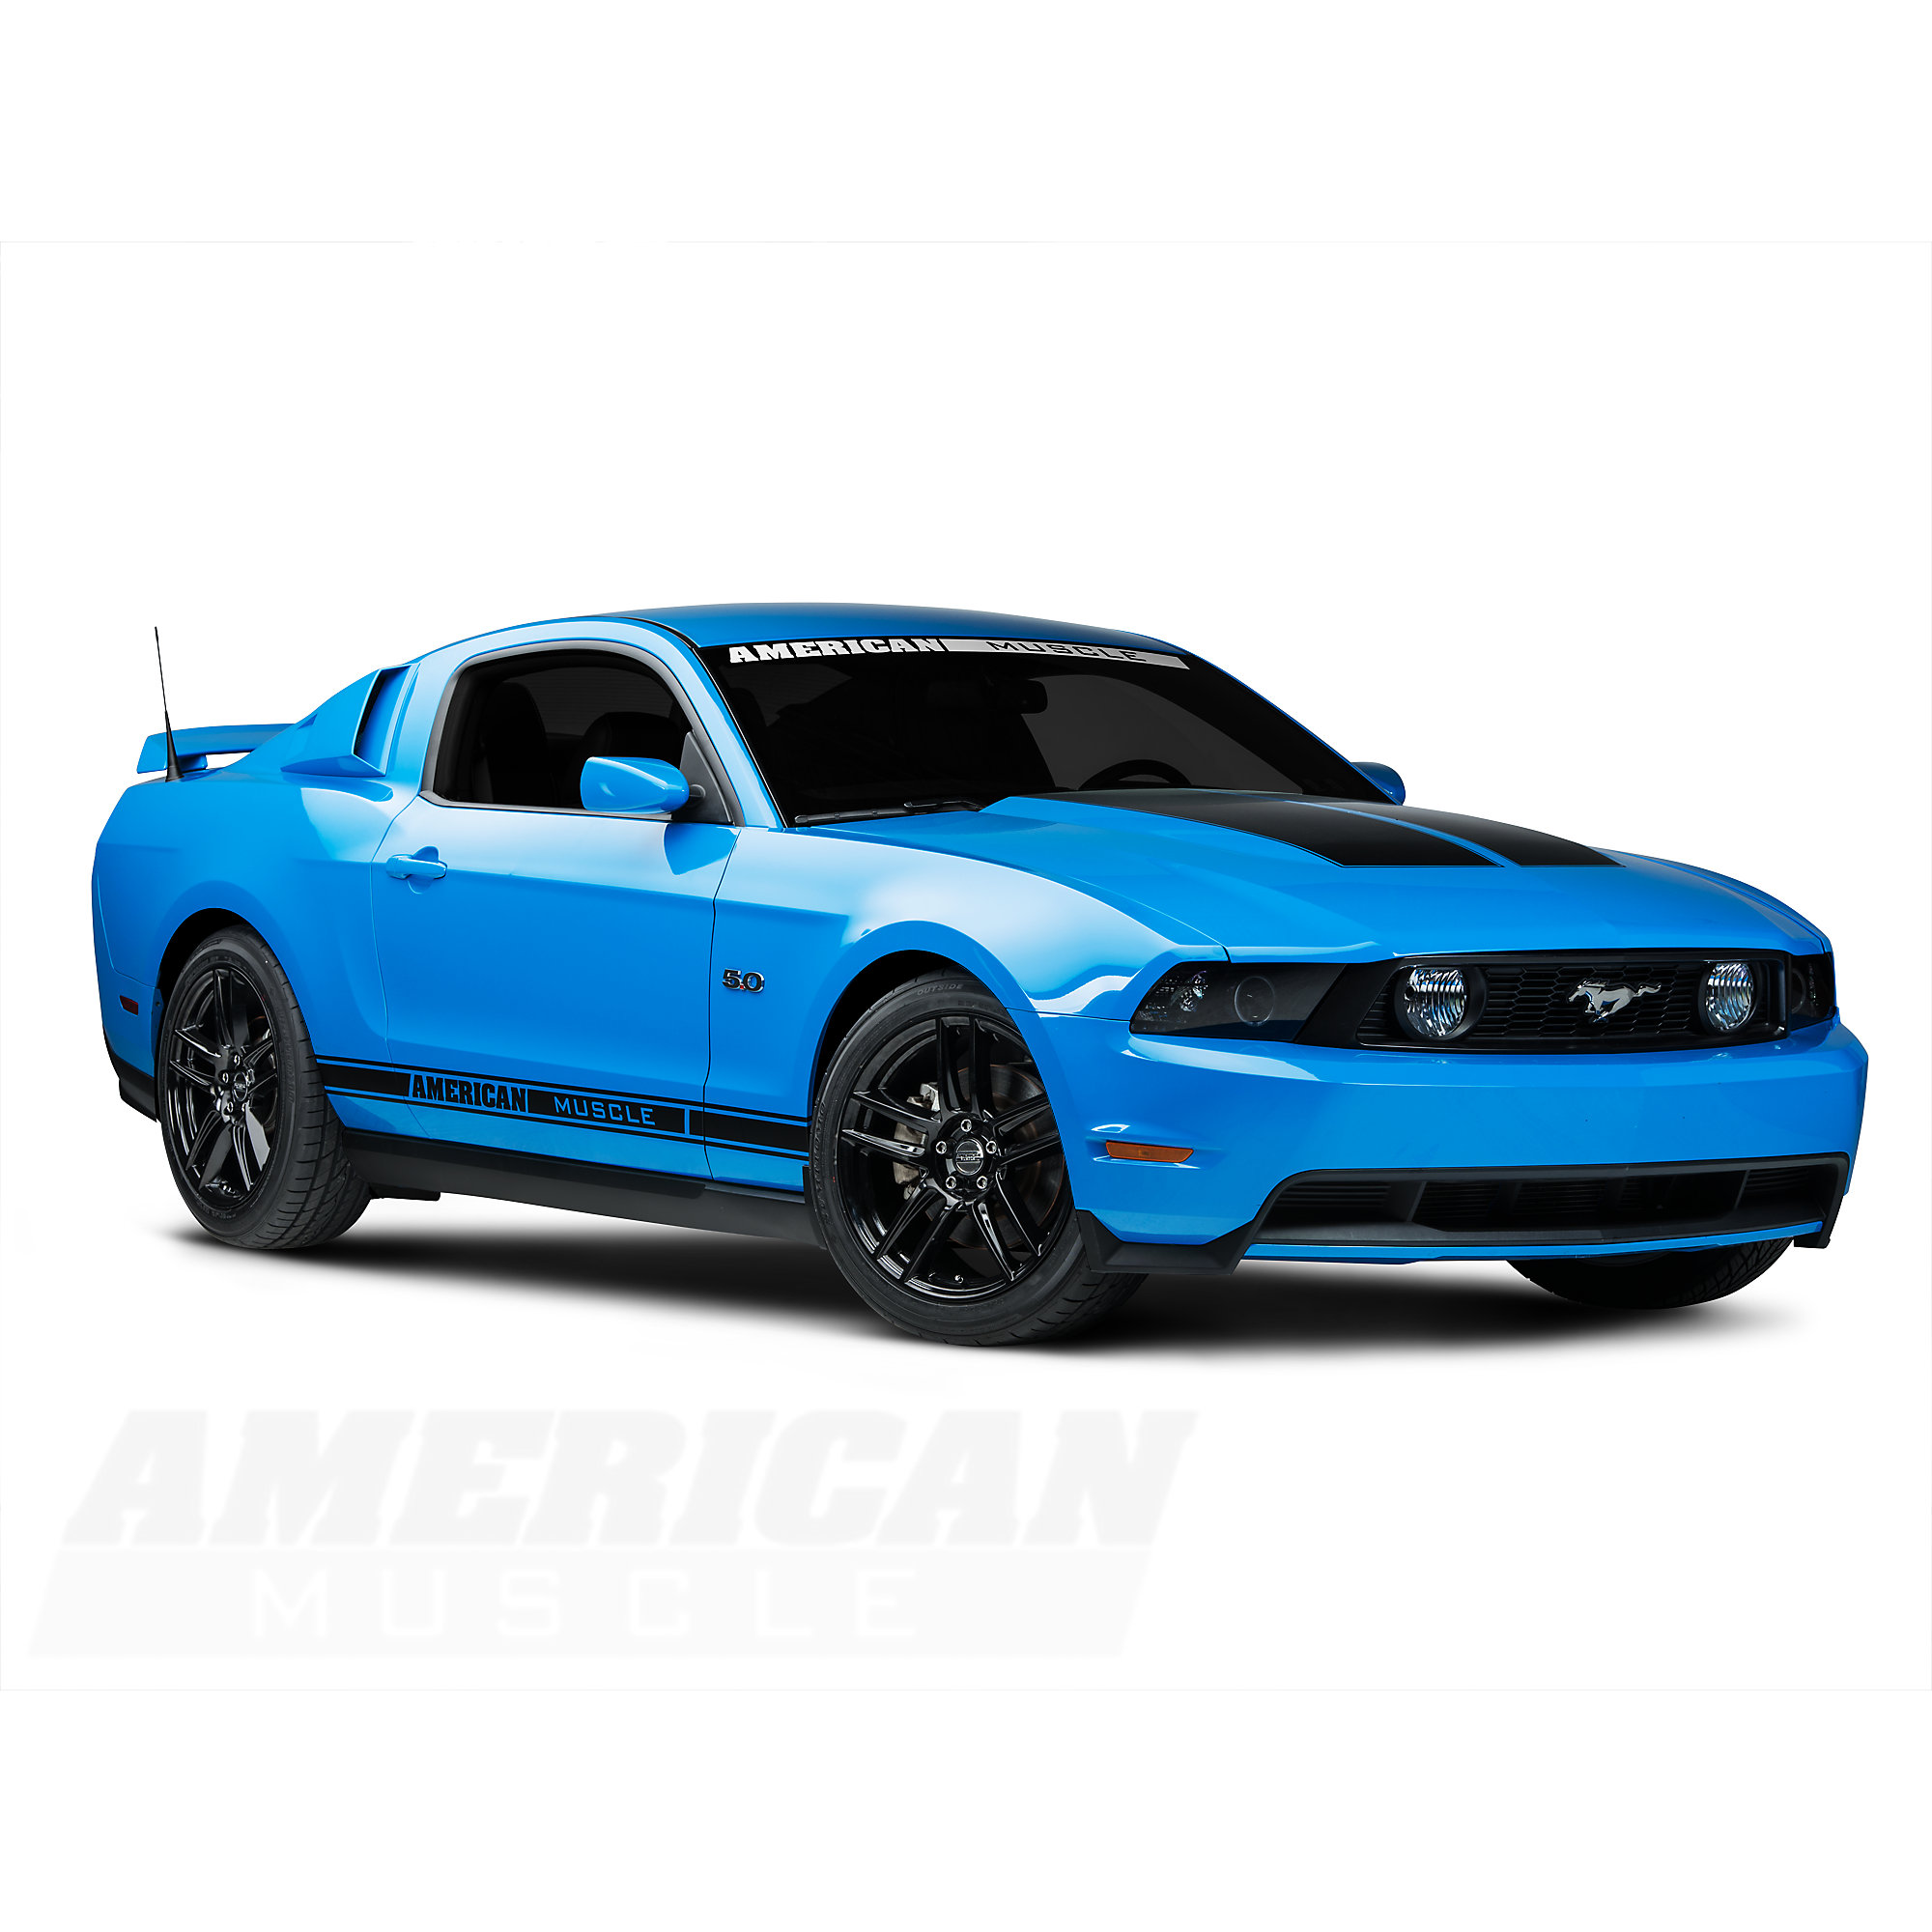 boss 302 laguna seca rims black ford mustang 2013 laguna seca wheels